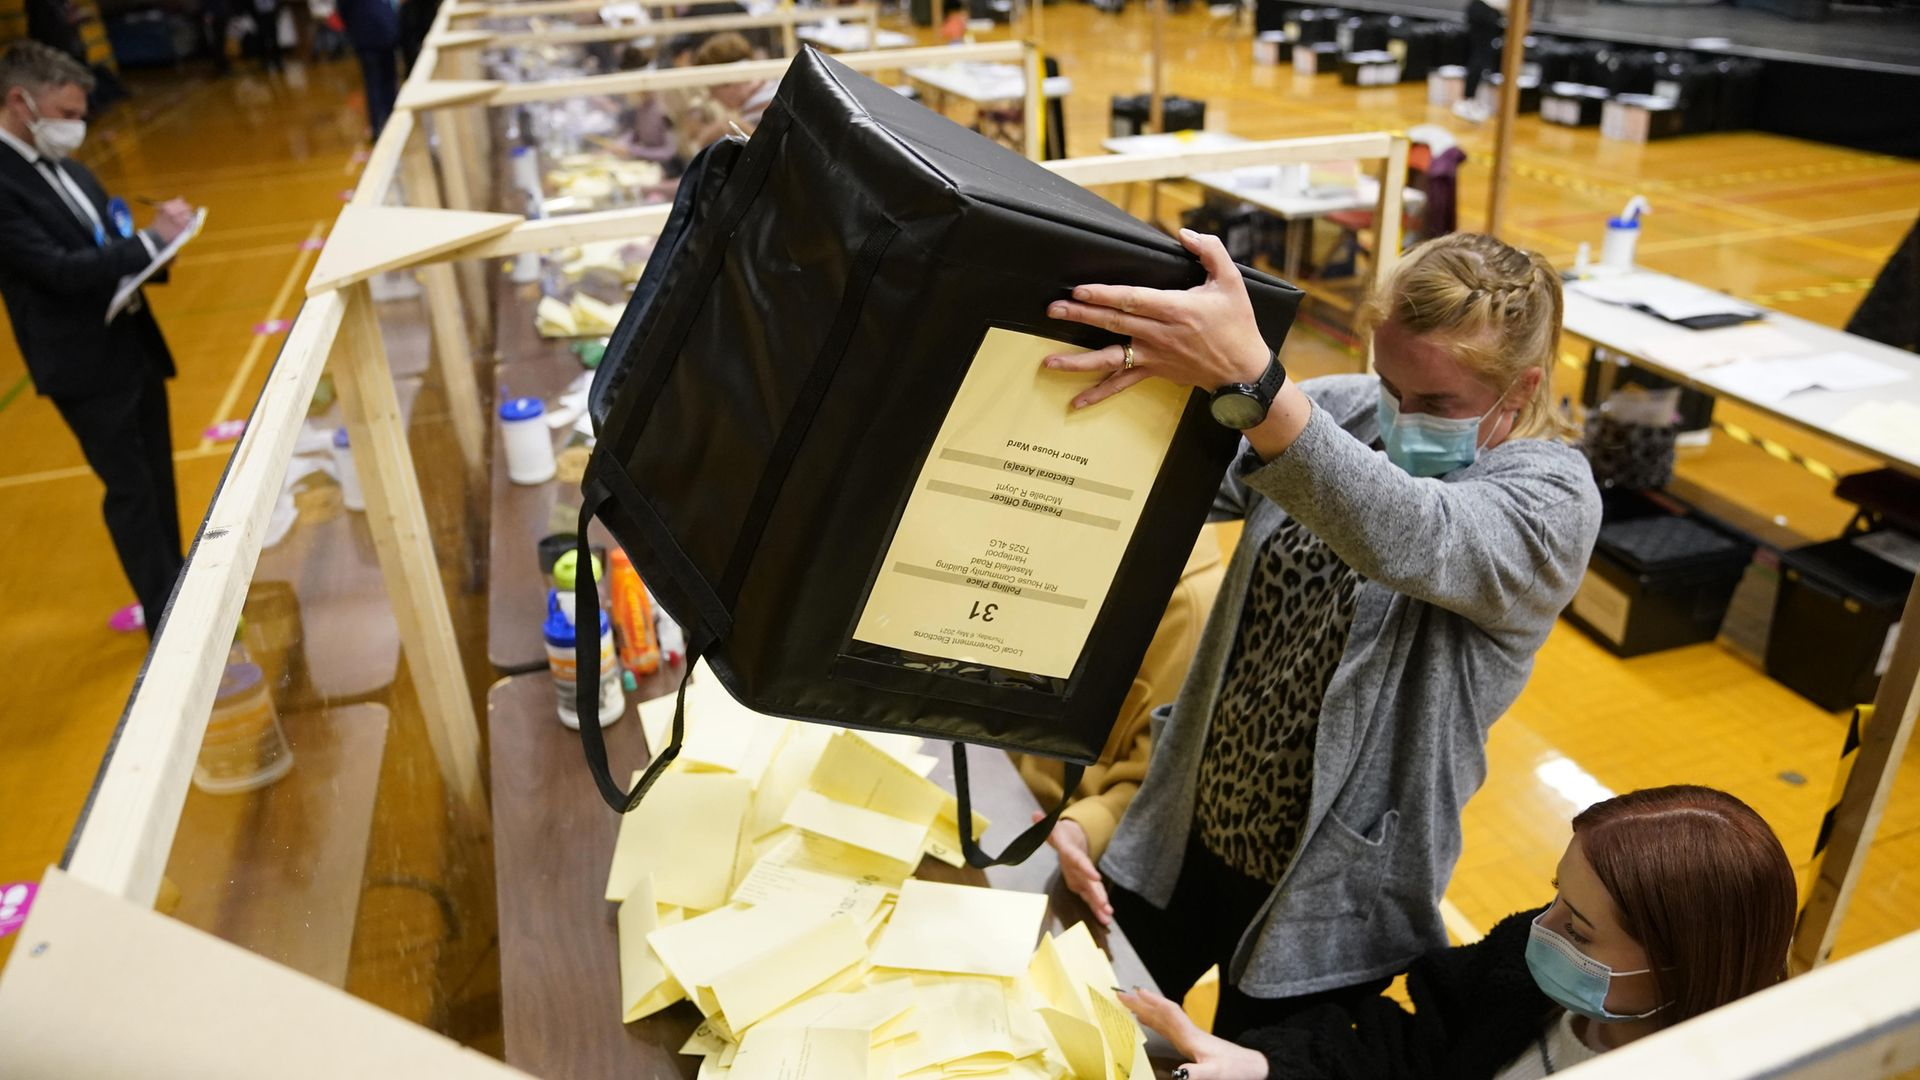 Ballot boxes are emptied at Mill House Leisure Centre in Hartlepool, for the counting of votes for the local and mayoral election and for the Hartlepool parliamentary by-election - Credit: PA